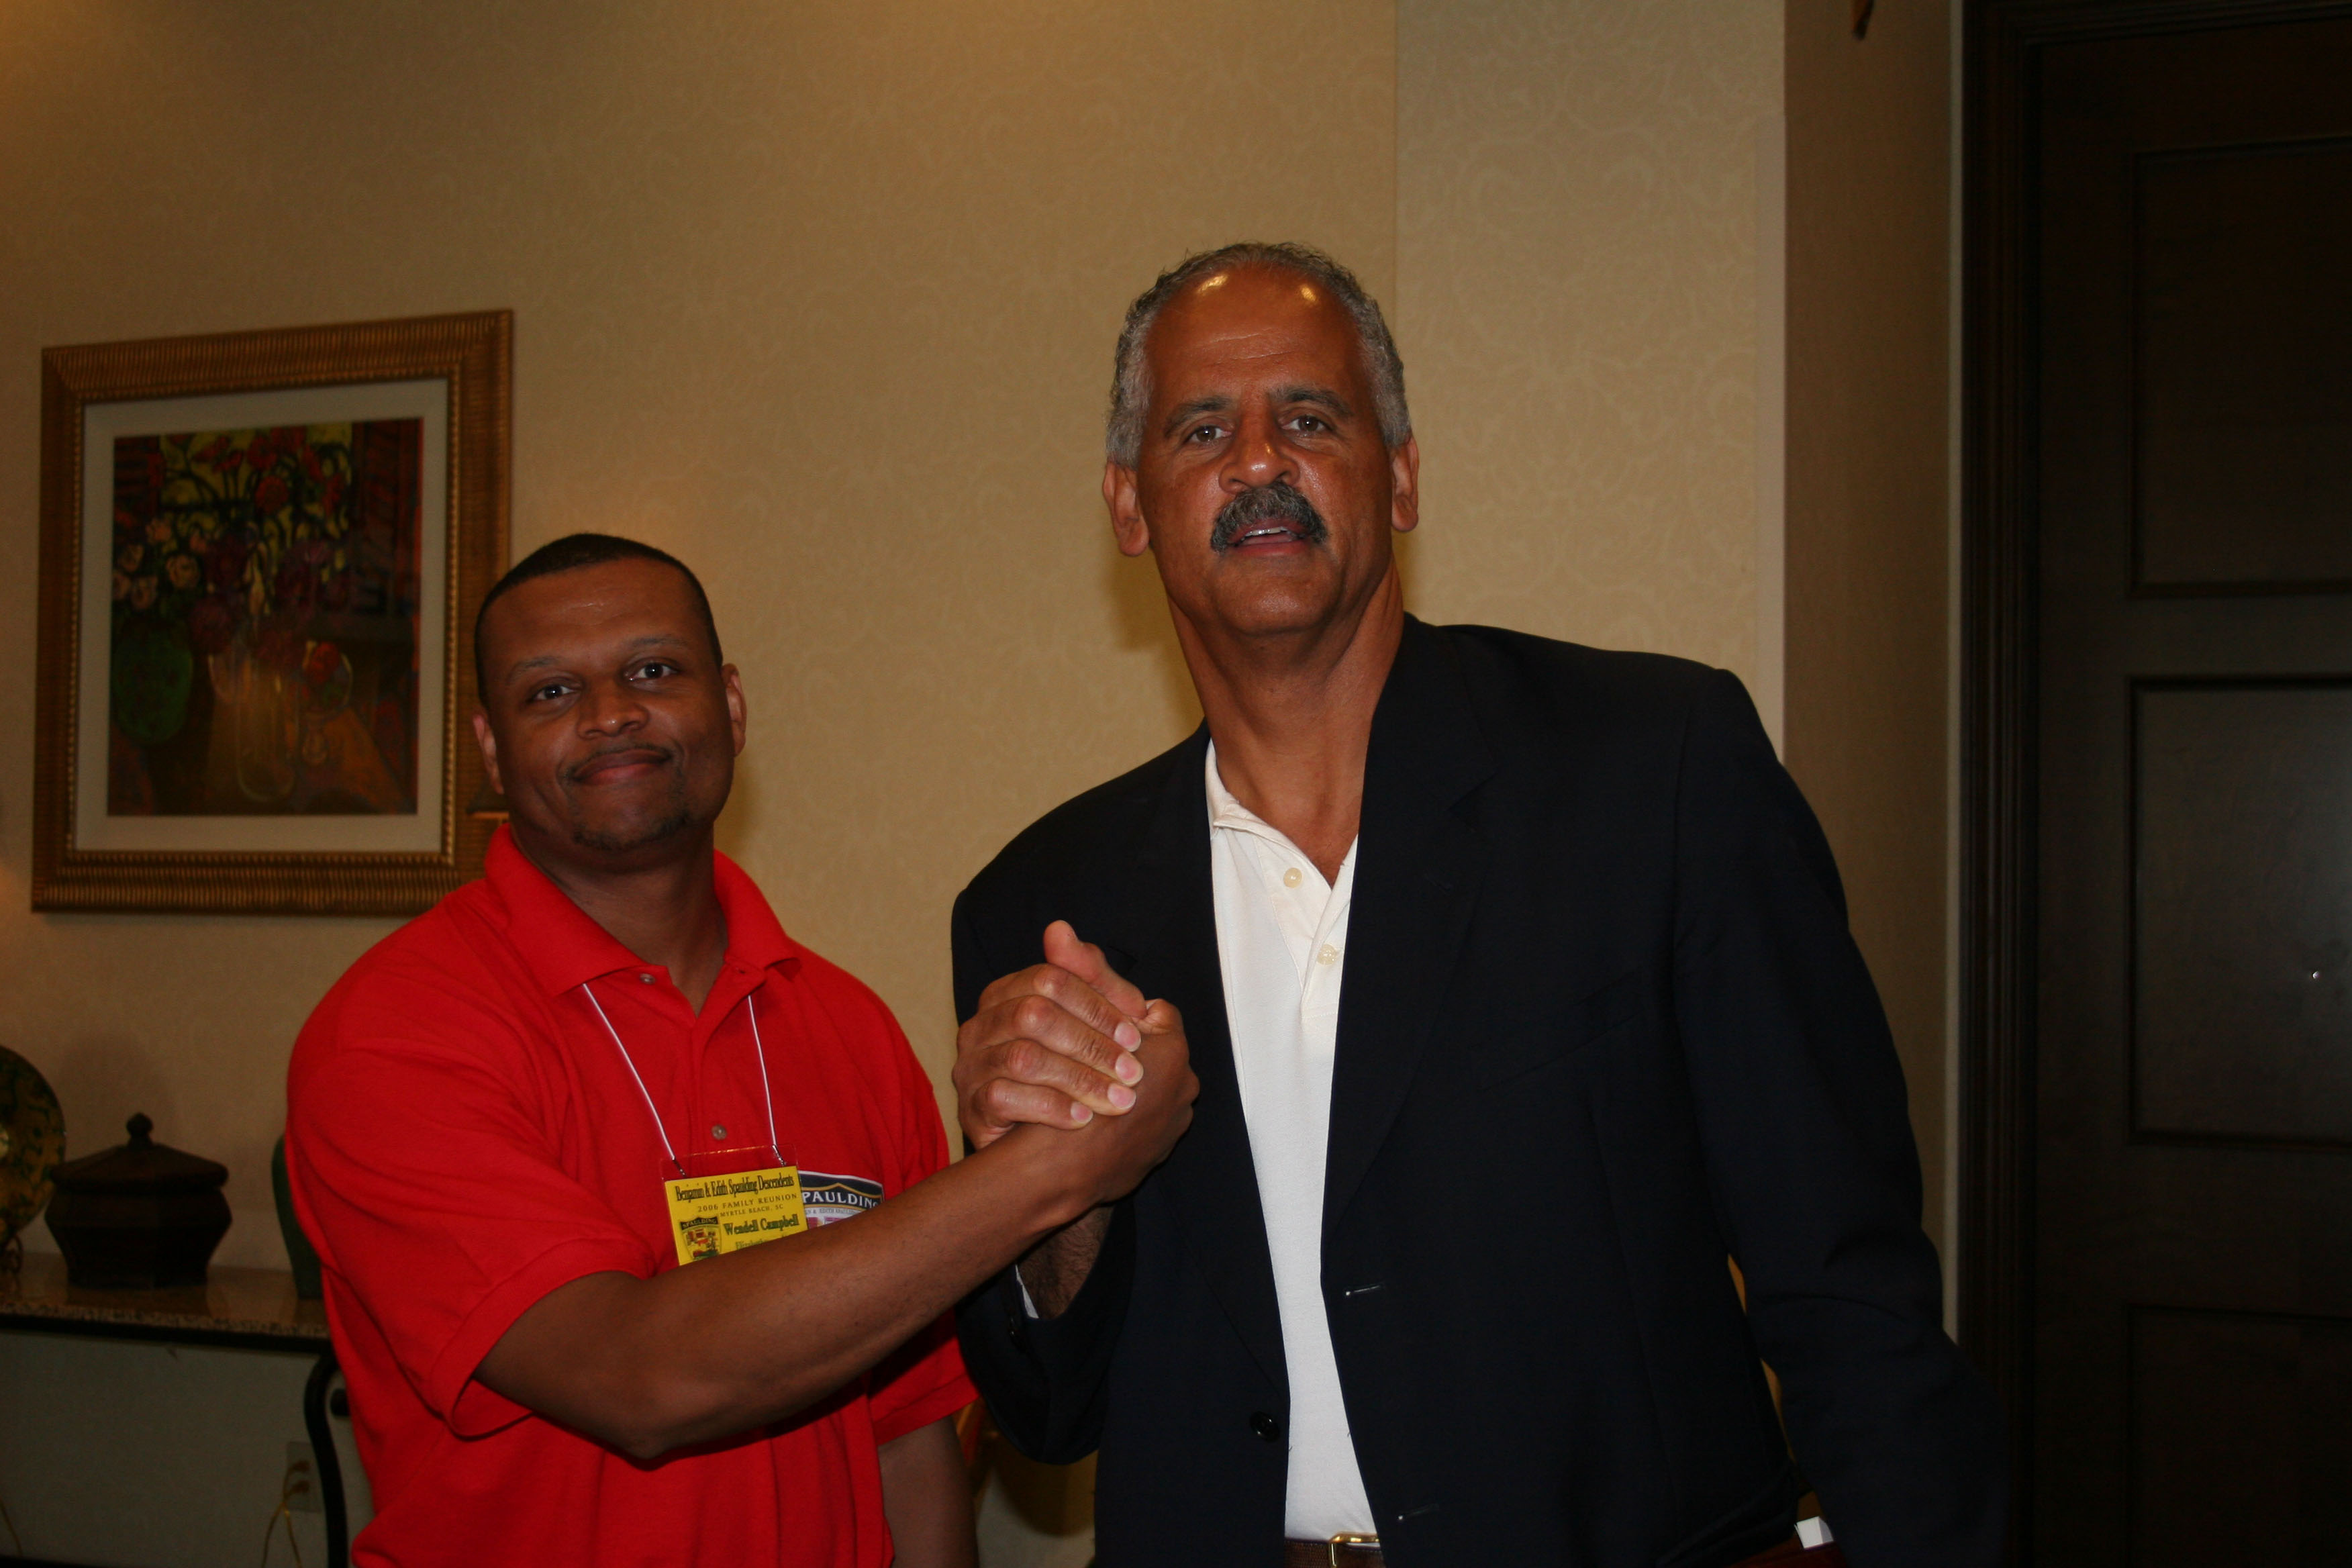 Wendell and Stedman